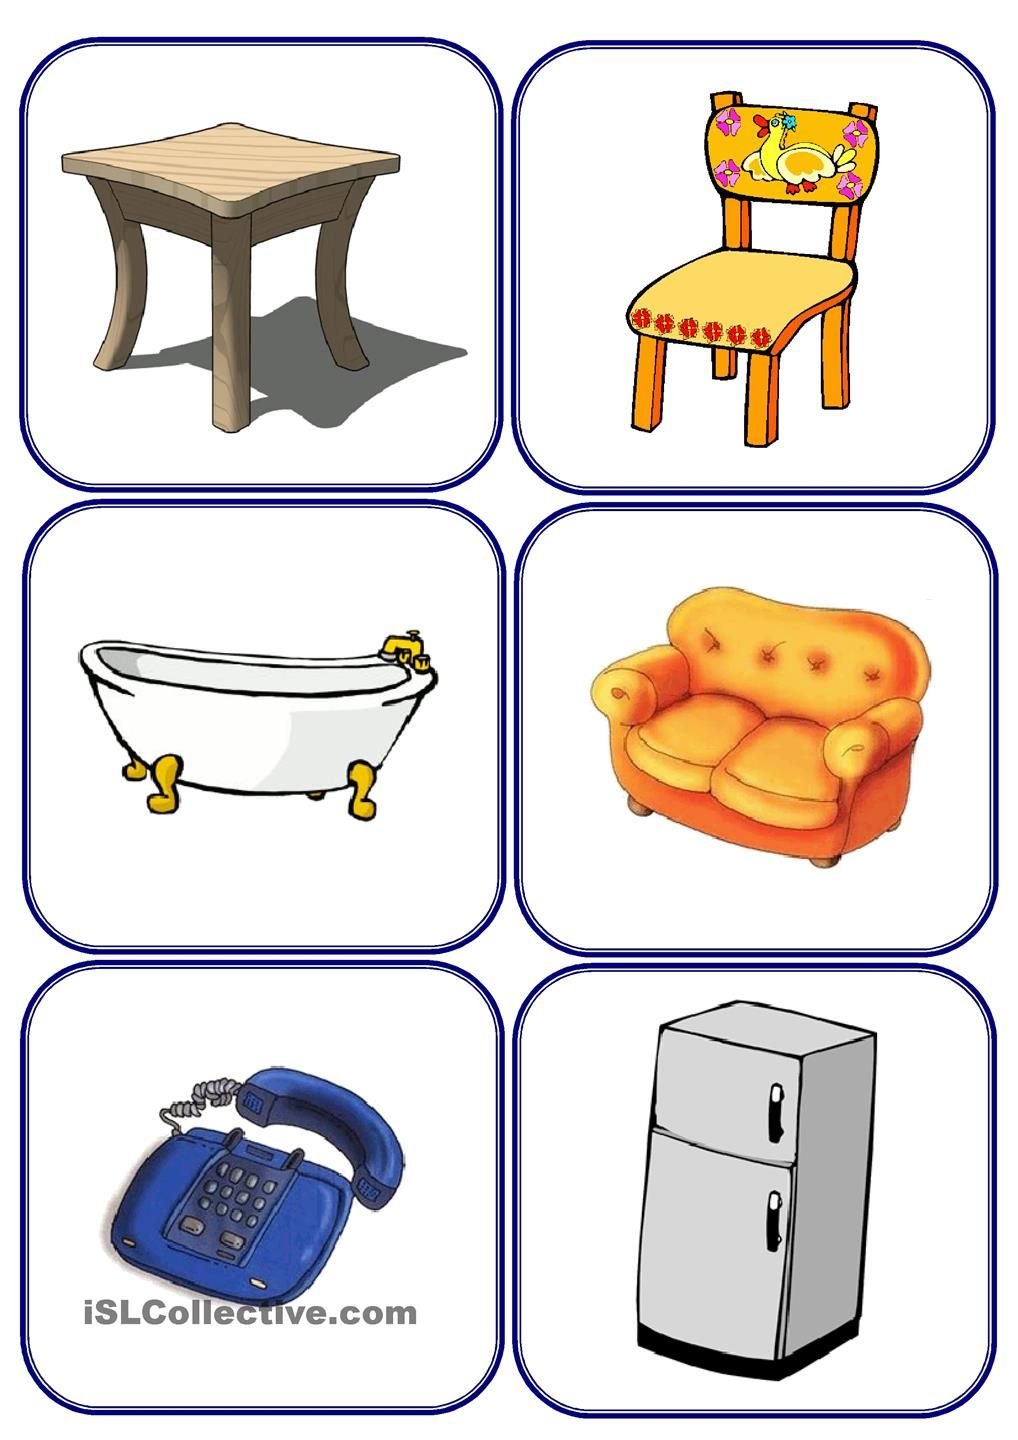 Furniture and parts of the house flashcards anglais for Meuble in english